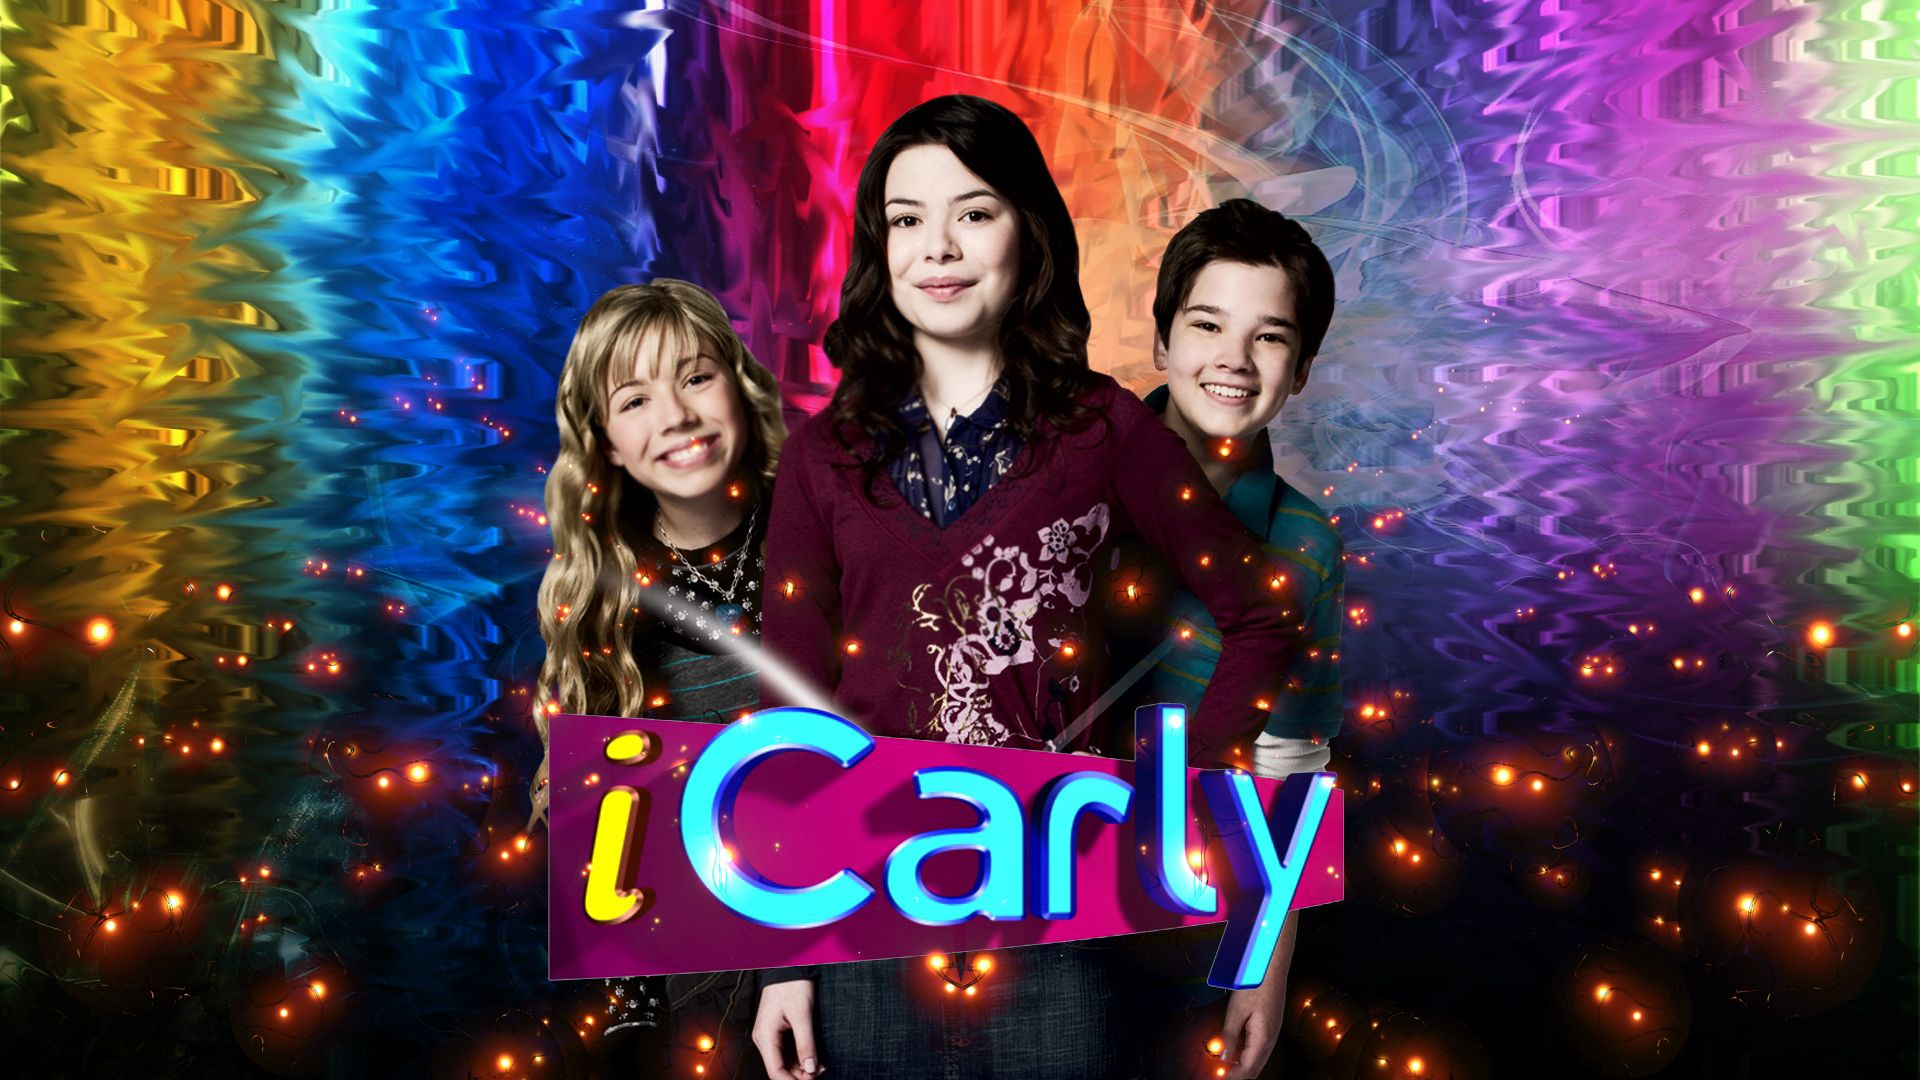 1920x1080 Best 44+ iCarly Wallpaper on HipWallpaper | iCarly Wallpaper ...